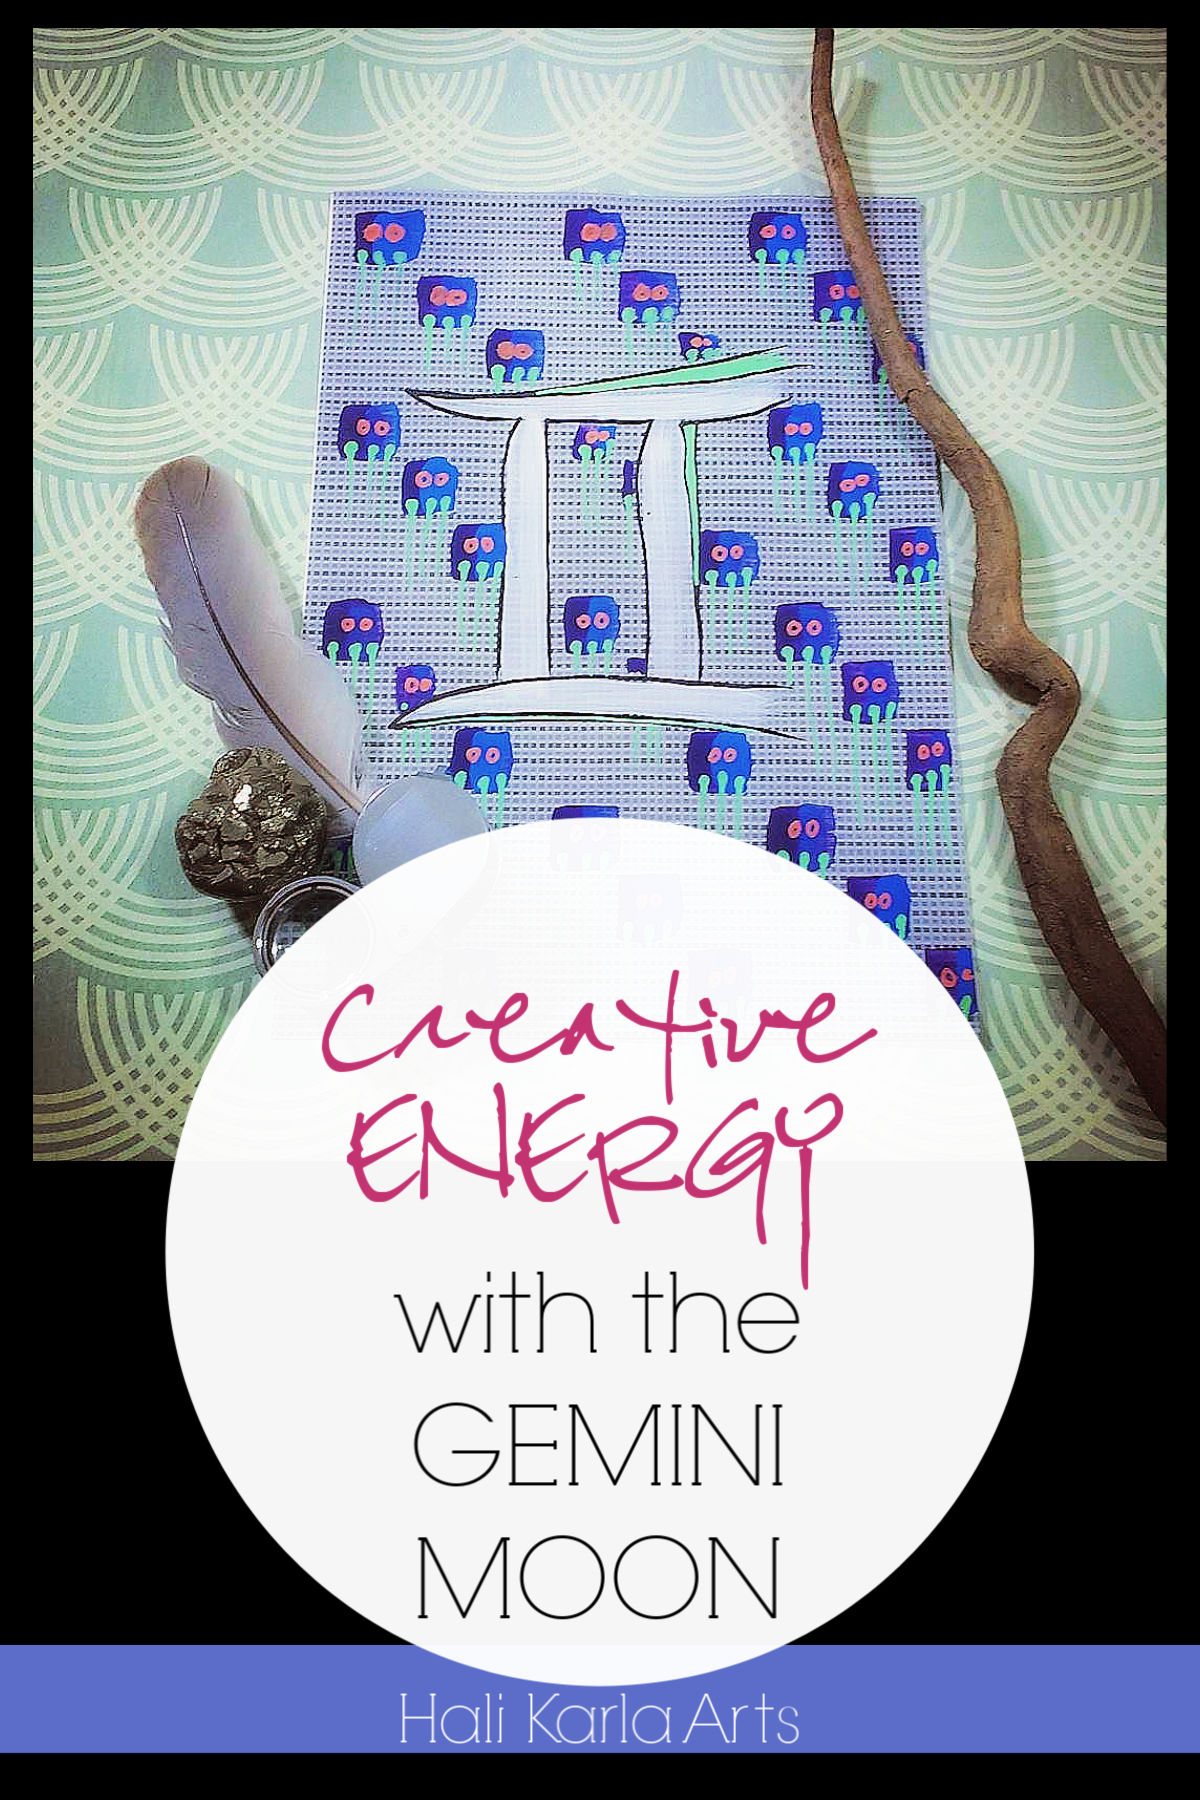 Creative Energy focus when the Moon is the the sign of GEMINI | Hali Karla Arts